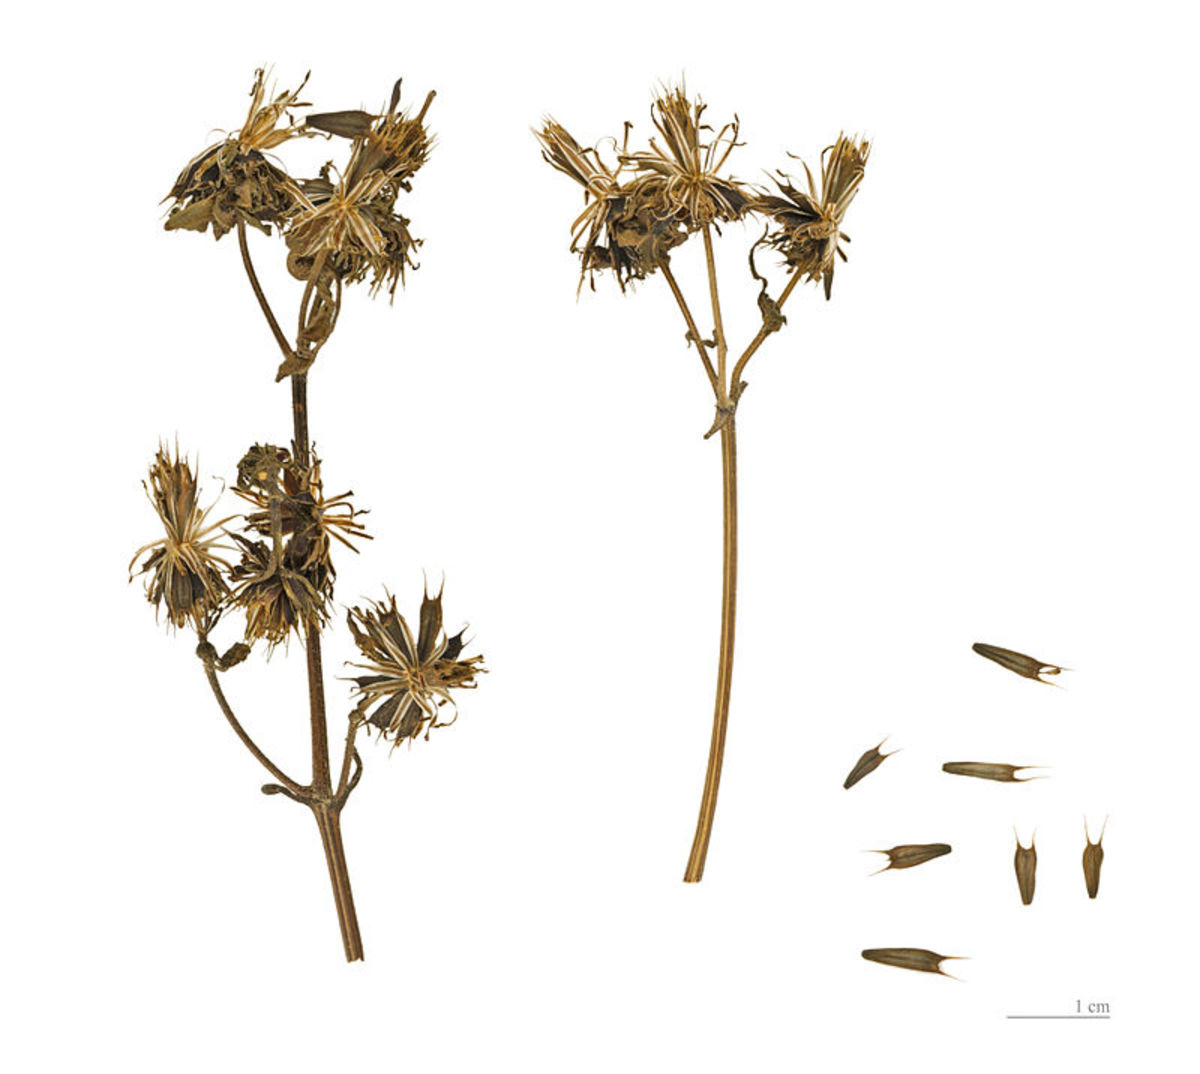 Seed Dispersal How Do Plants Spread Their Seeds